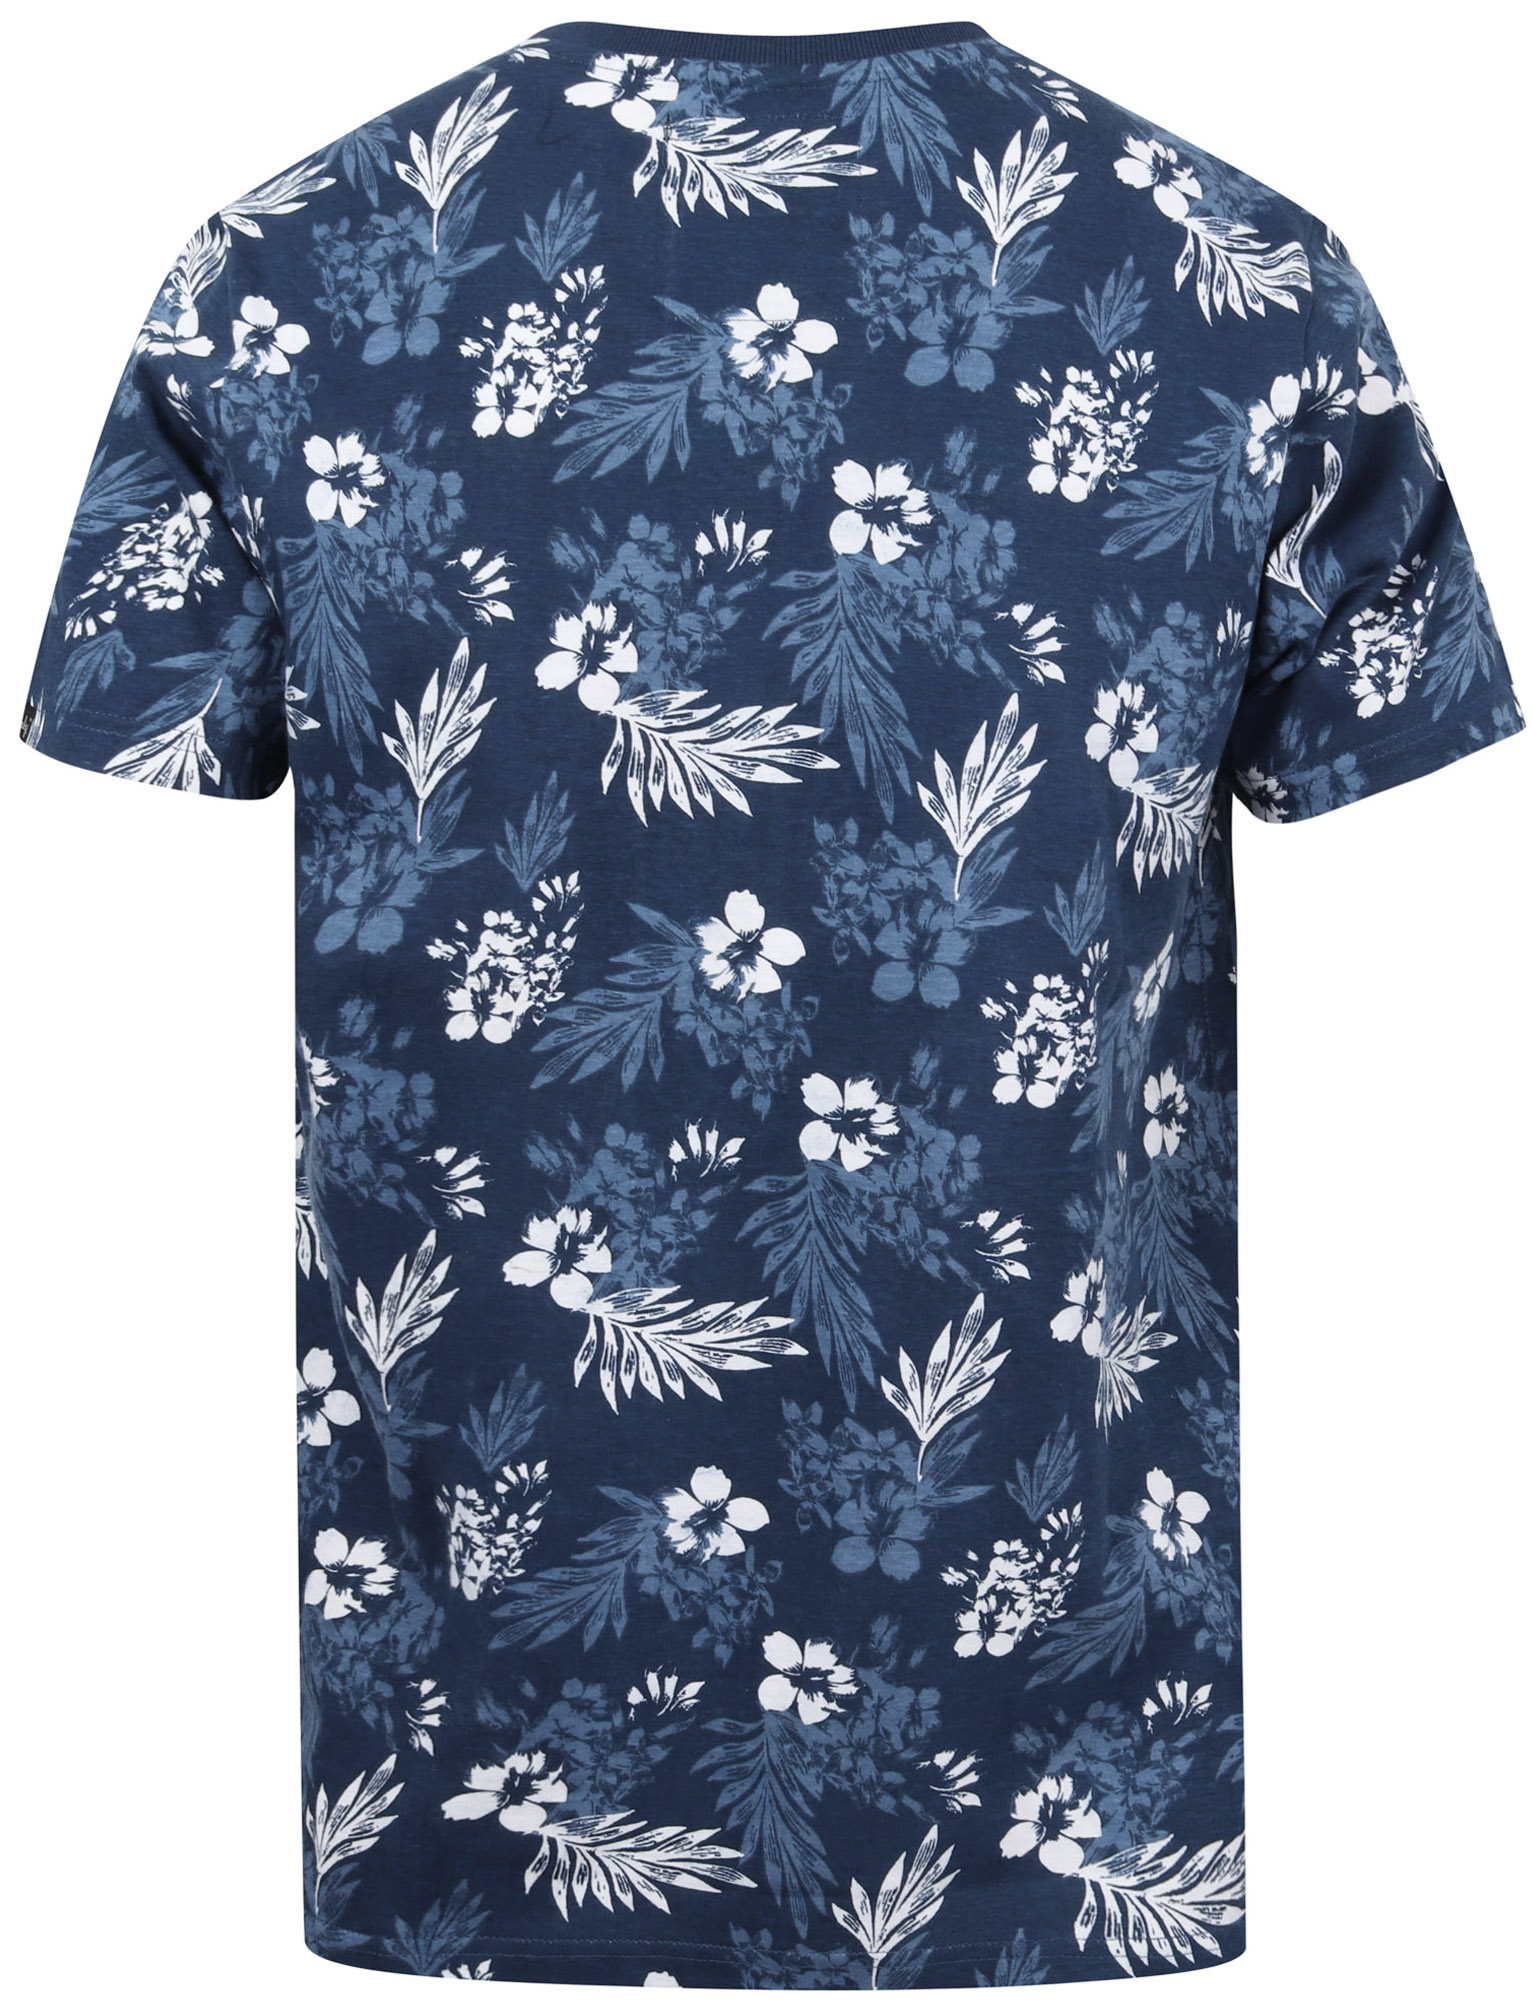 thumbnail 32 - Tokyo-Laundry-Tropical-Print-Crew-Neck-T-Shirt-Hawaiian-Floral-Summer-Holiday